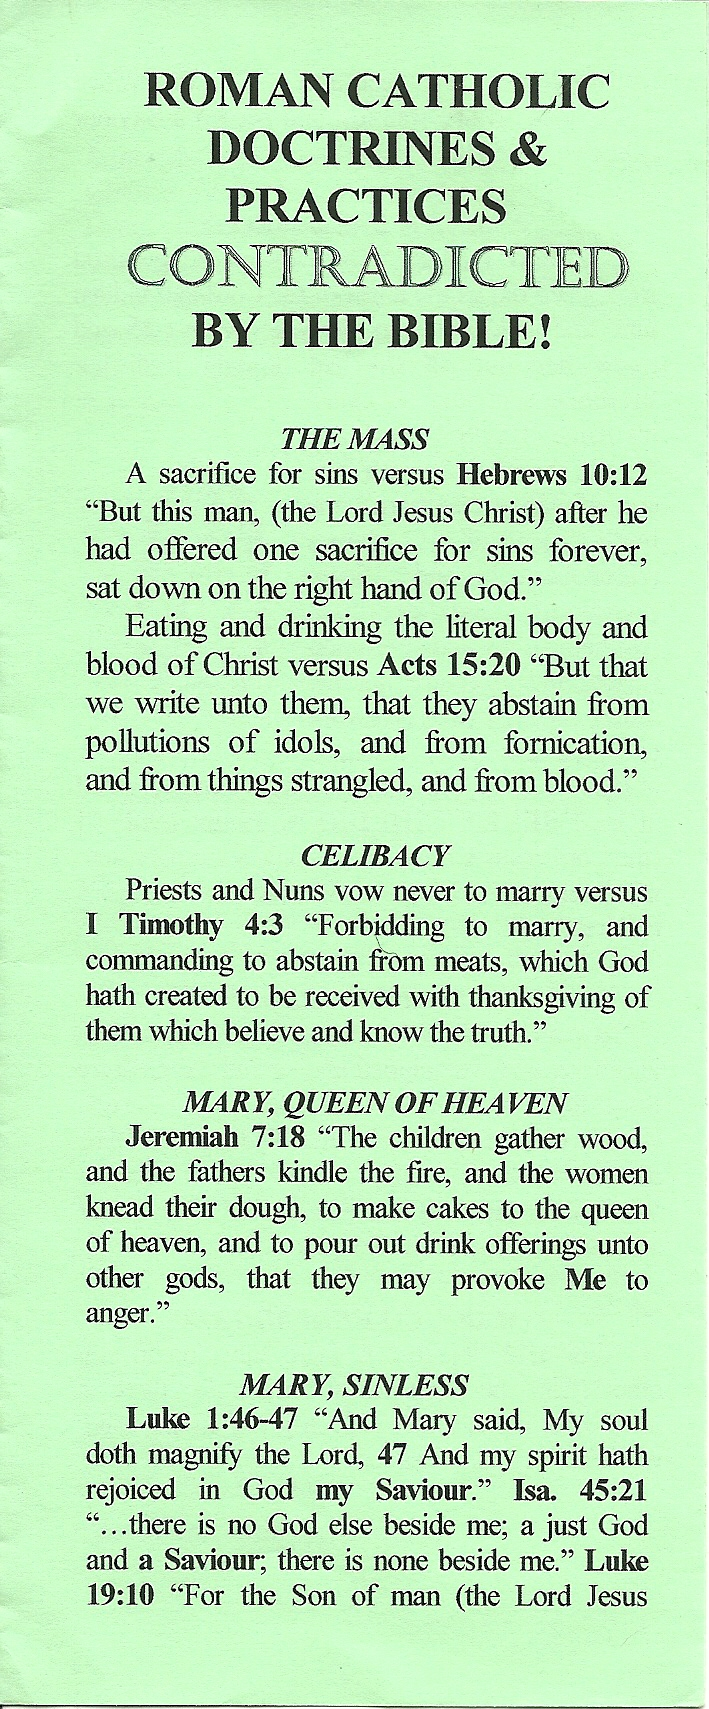 R.C. Doctrines & Practices Contradicted by the Bible